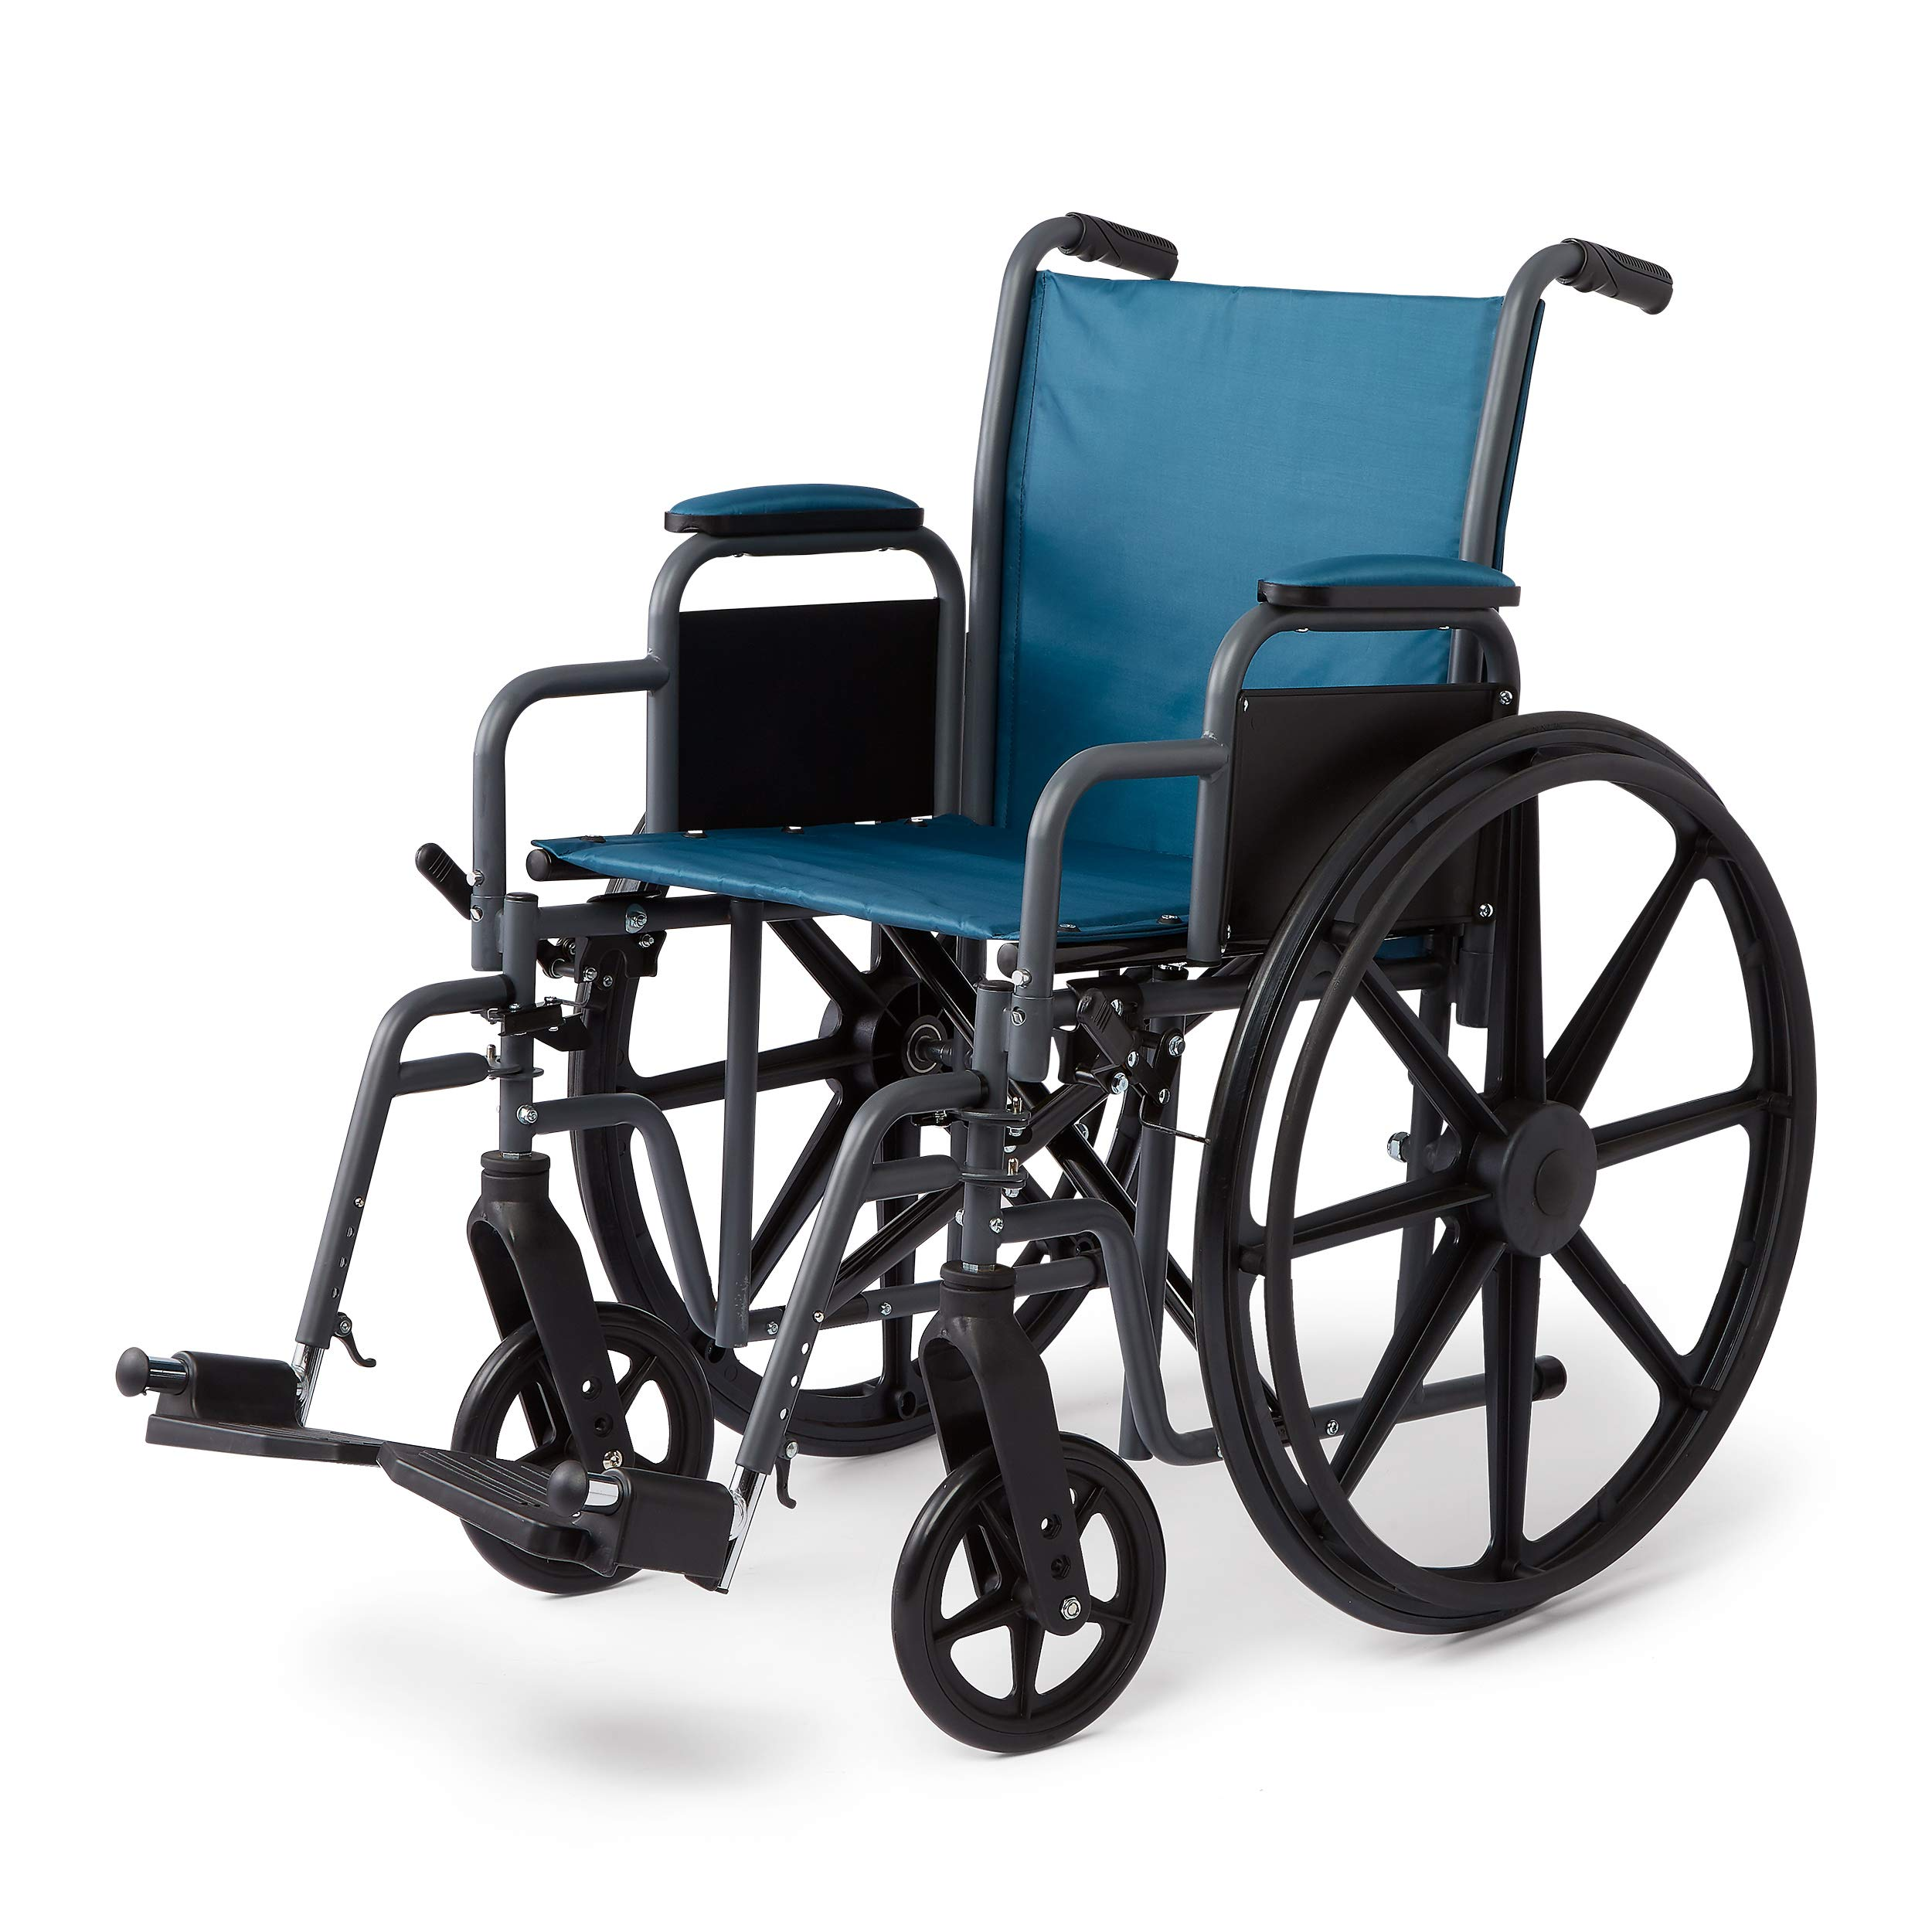 Medline Folding Wheelchair with Desk-Length Arms & Swing-Away Leg Rests, 18'' X 16'' Seat, Microban Antimicrobial Protection, Gray Frame, Teal Nylon Upholstery by Medline